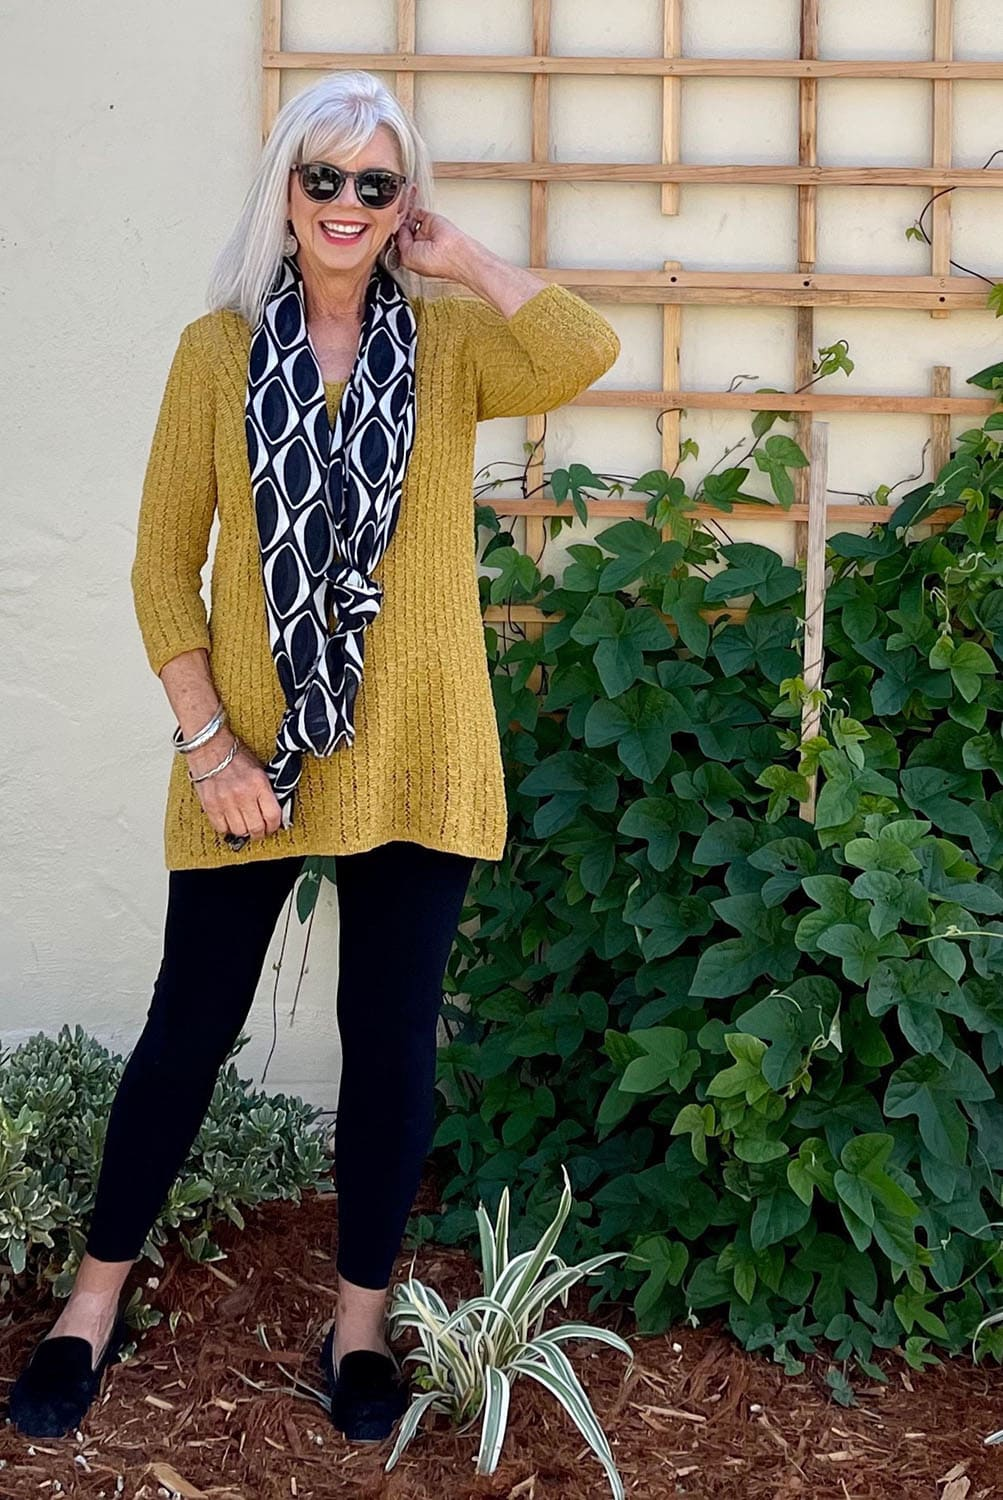 cindy hattersley in knotted scarf